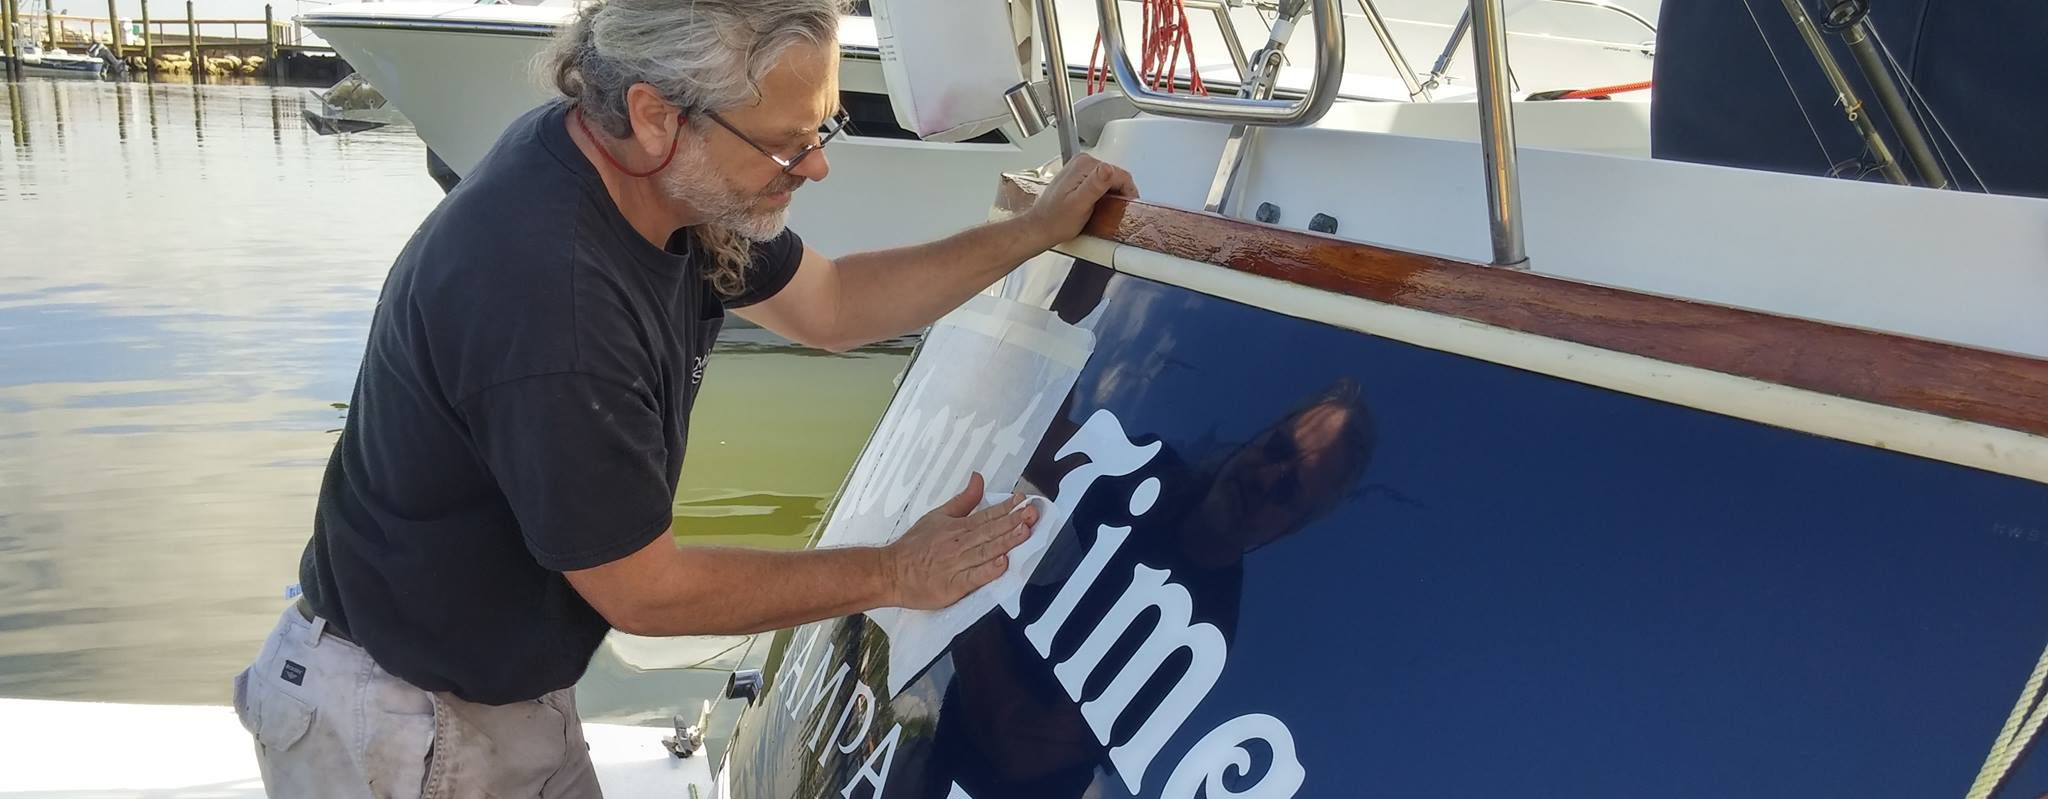 Custom Boat Lettering Installed Locally Names St